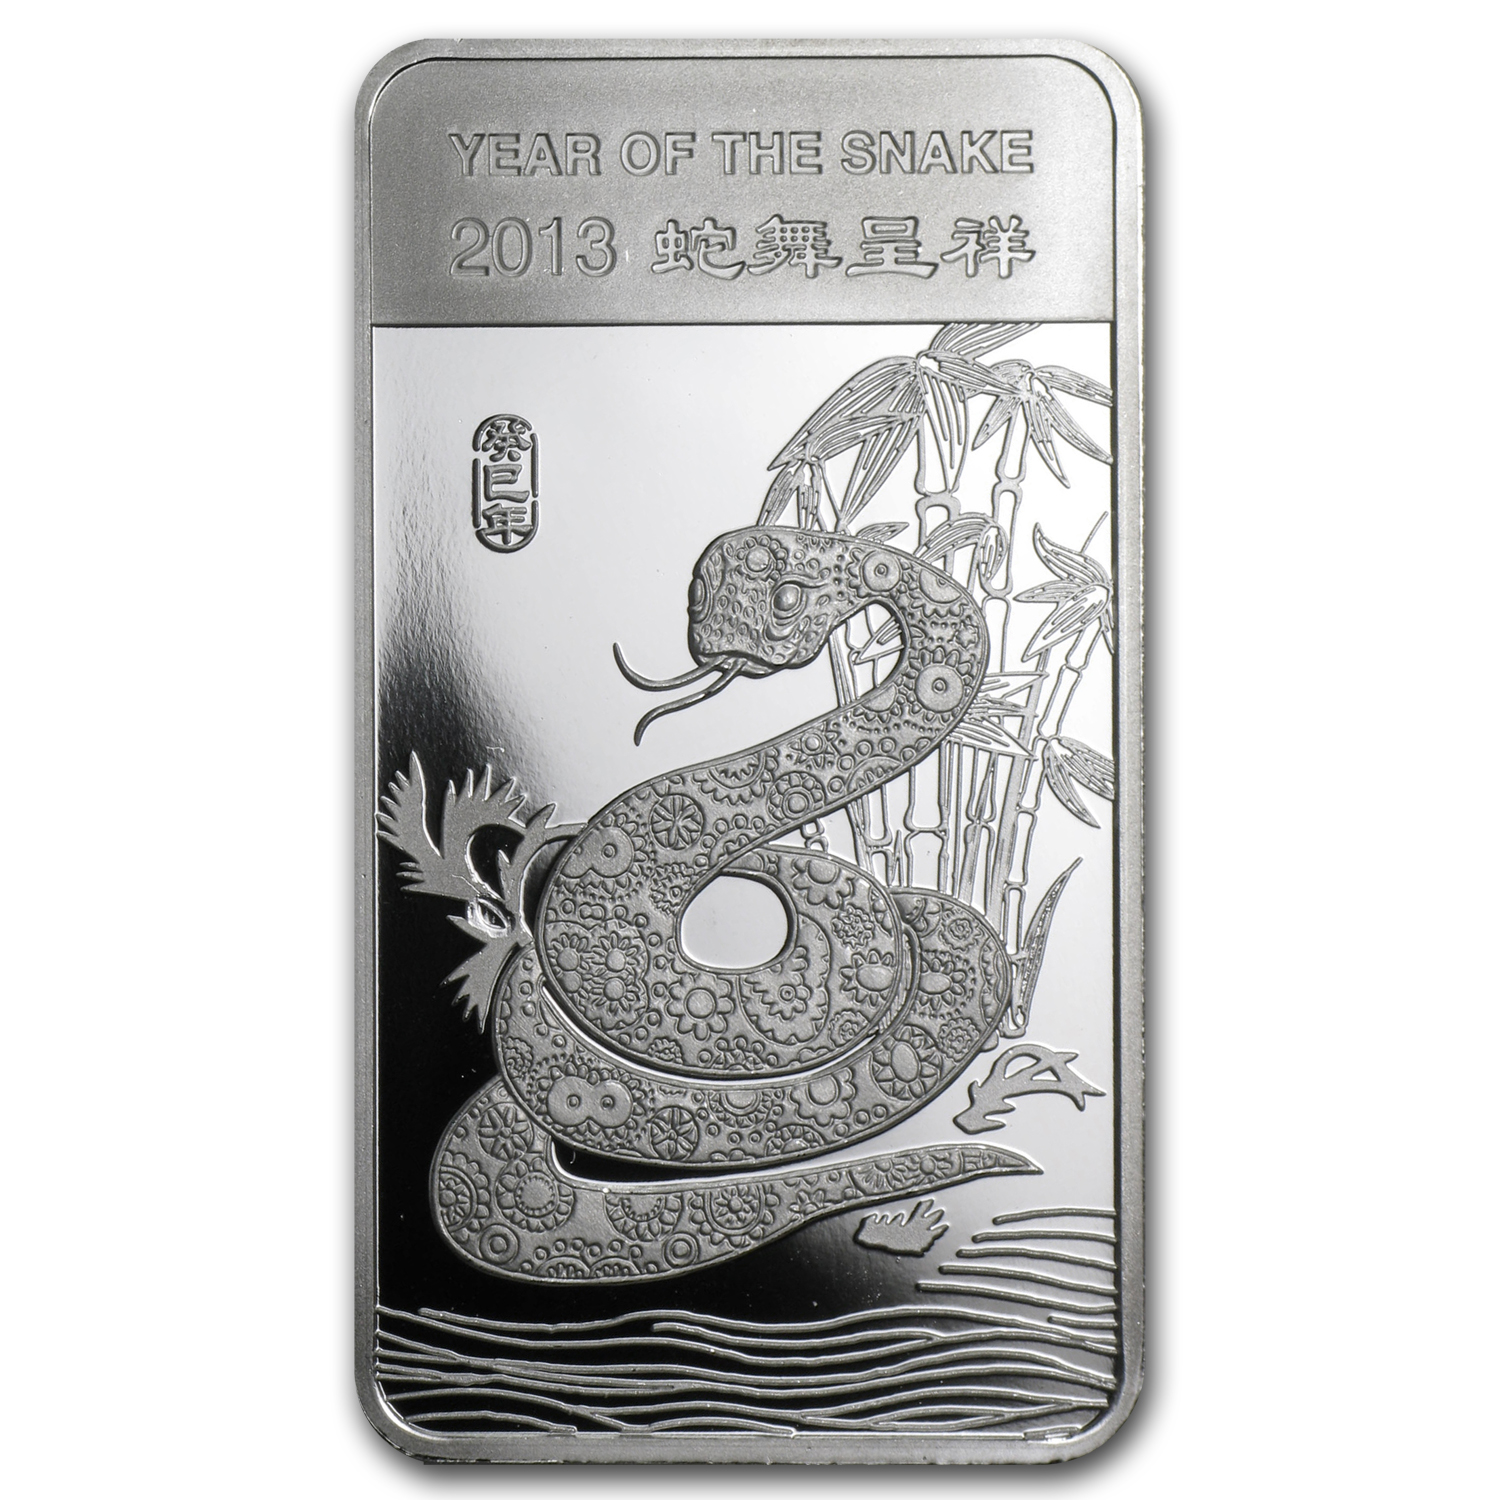 1/2 oz Silver Bars - Year of the Snake